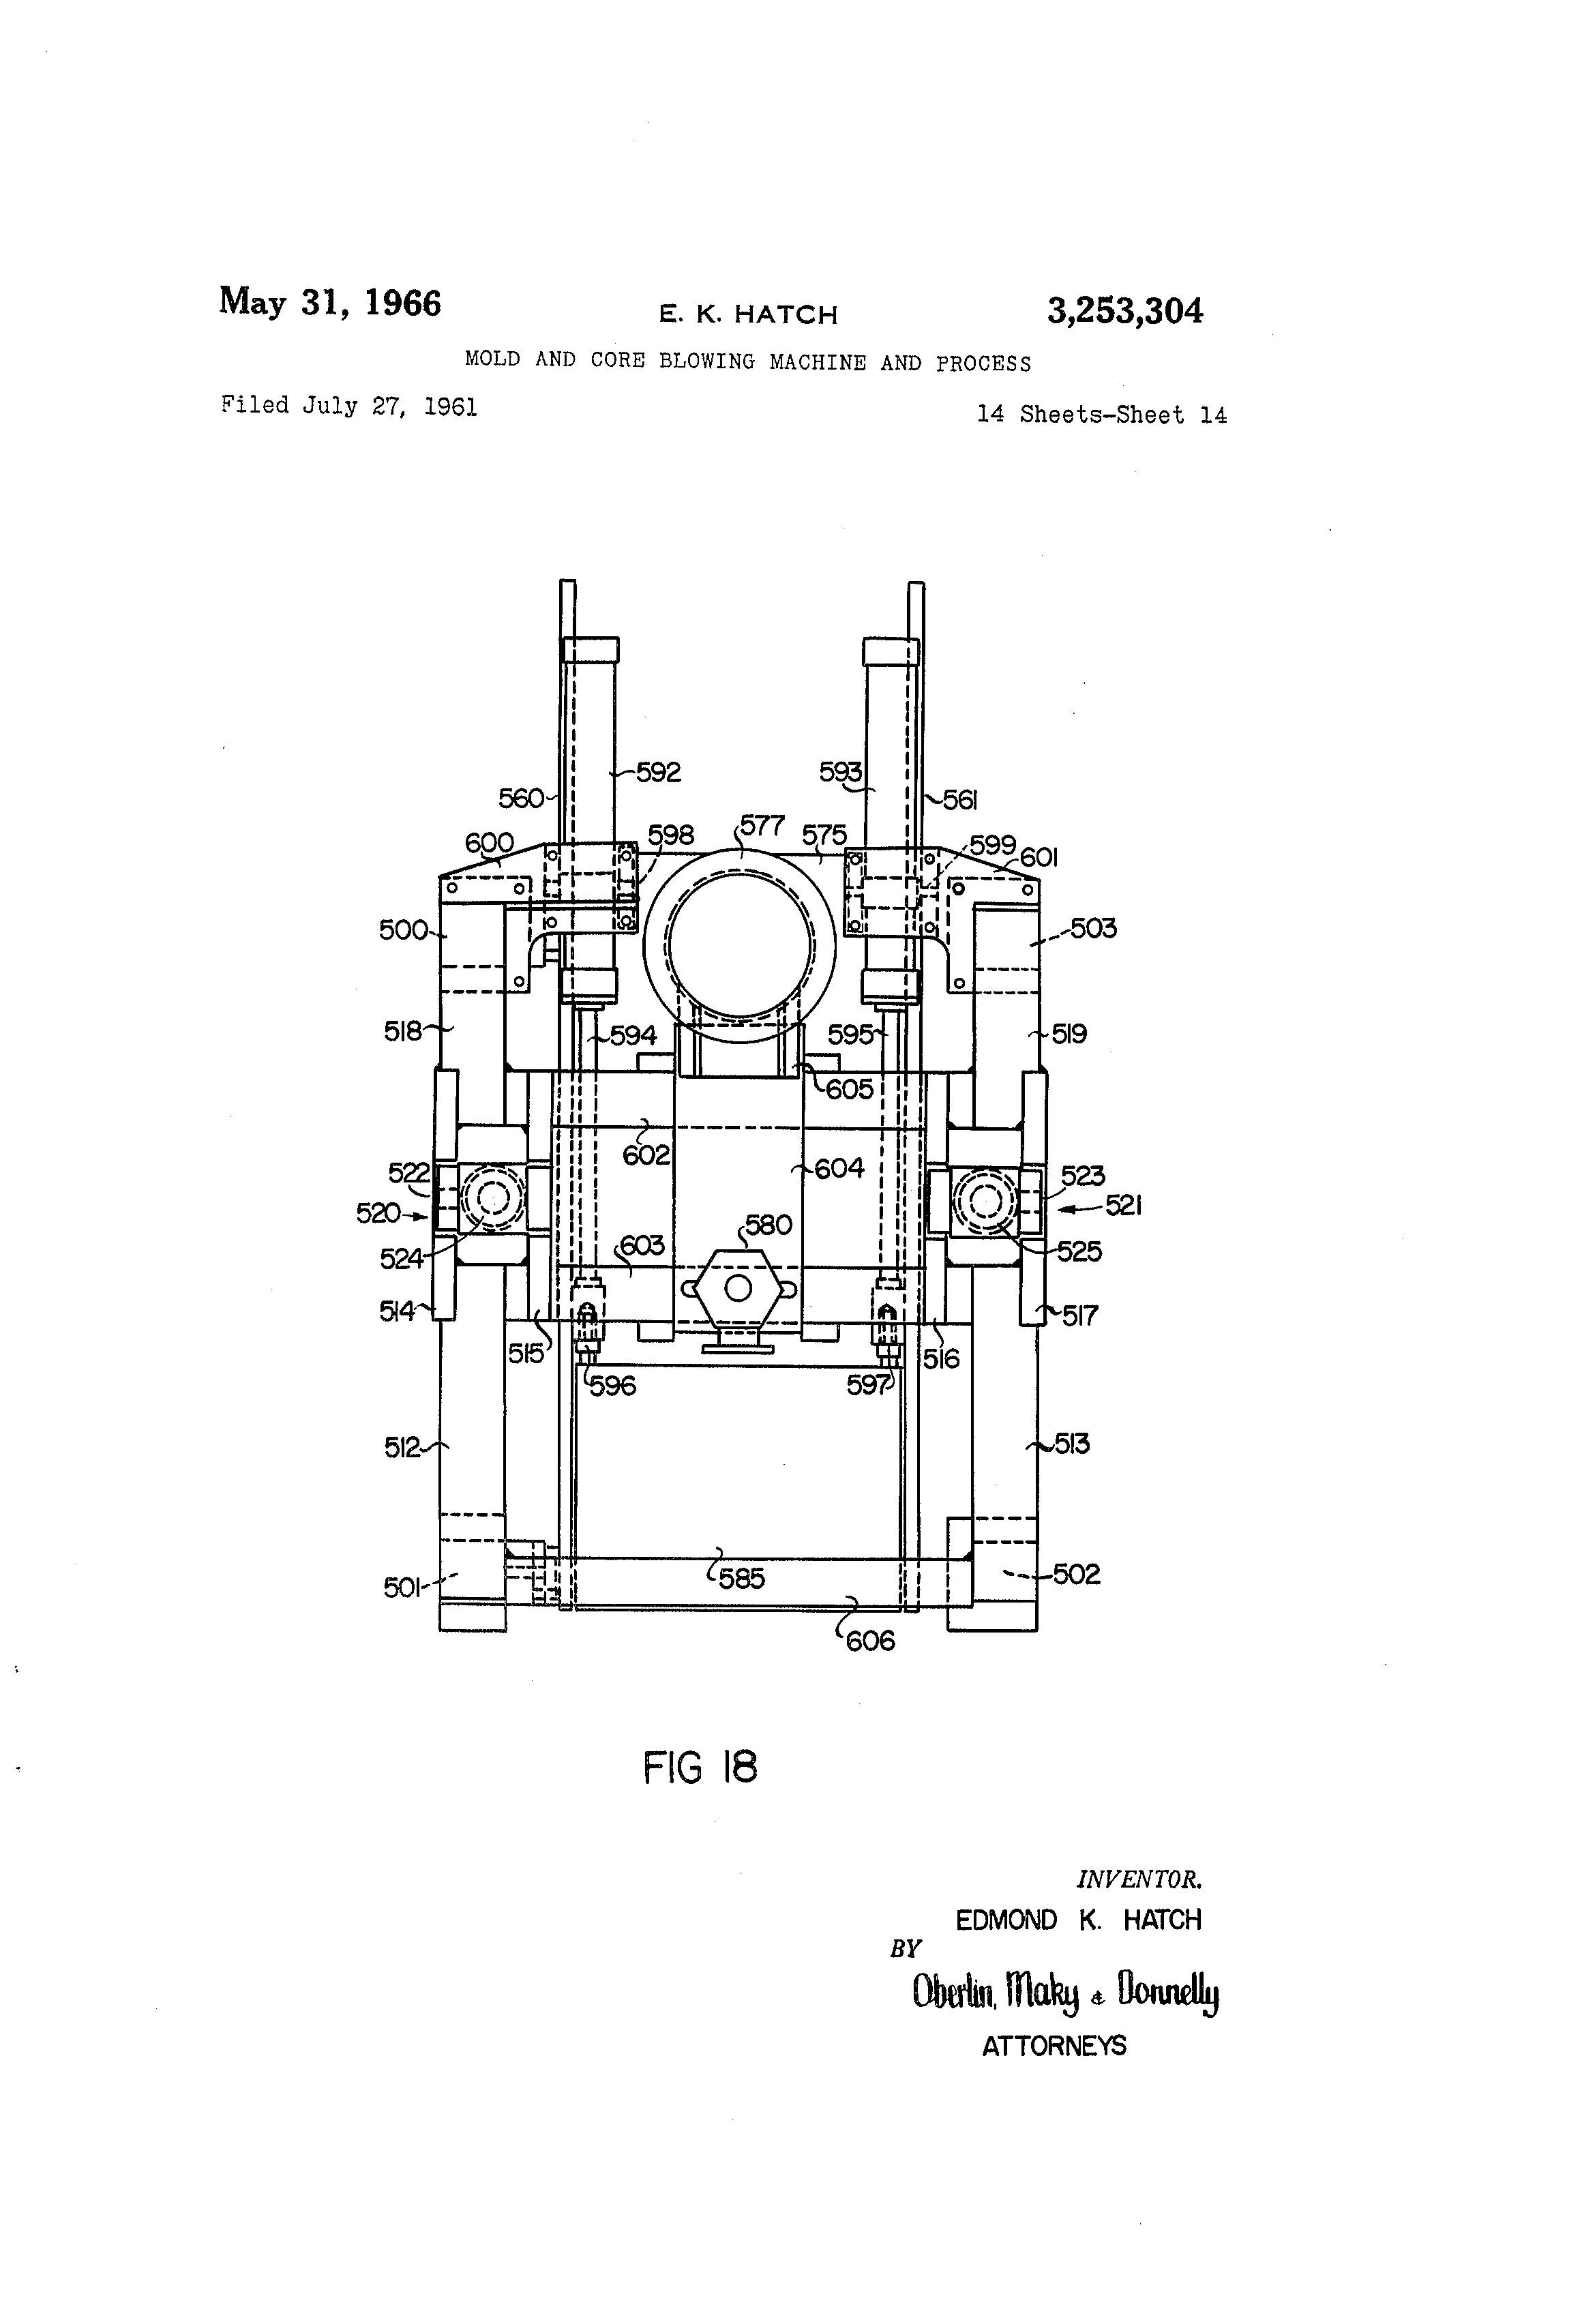 US3253304 13 patent us3253304 mold and core blowing machine and process  at readyjetset.co